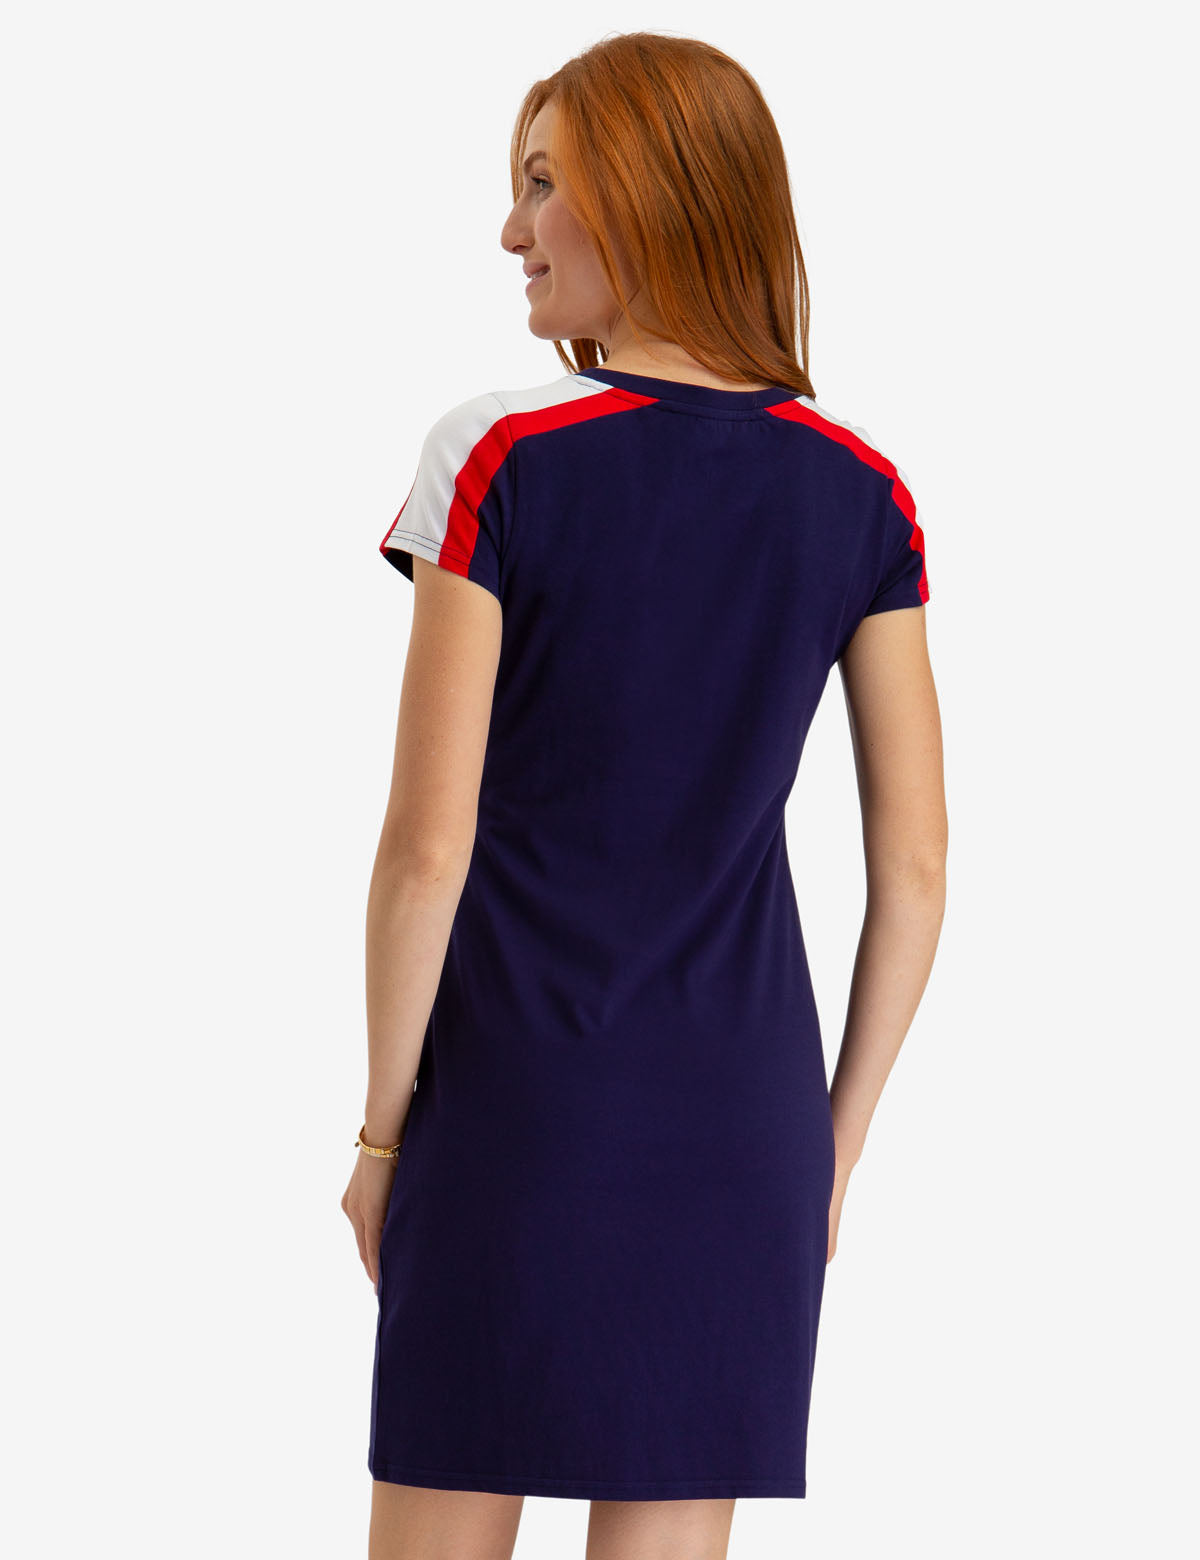 JERSEY T-SHIRT DRESS - U.S. Polo Assn.